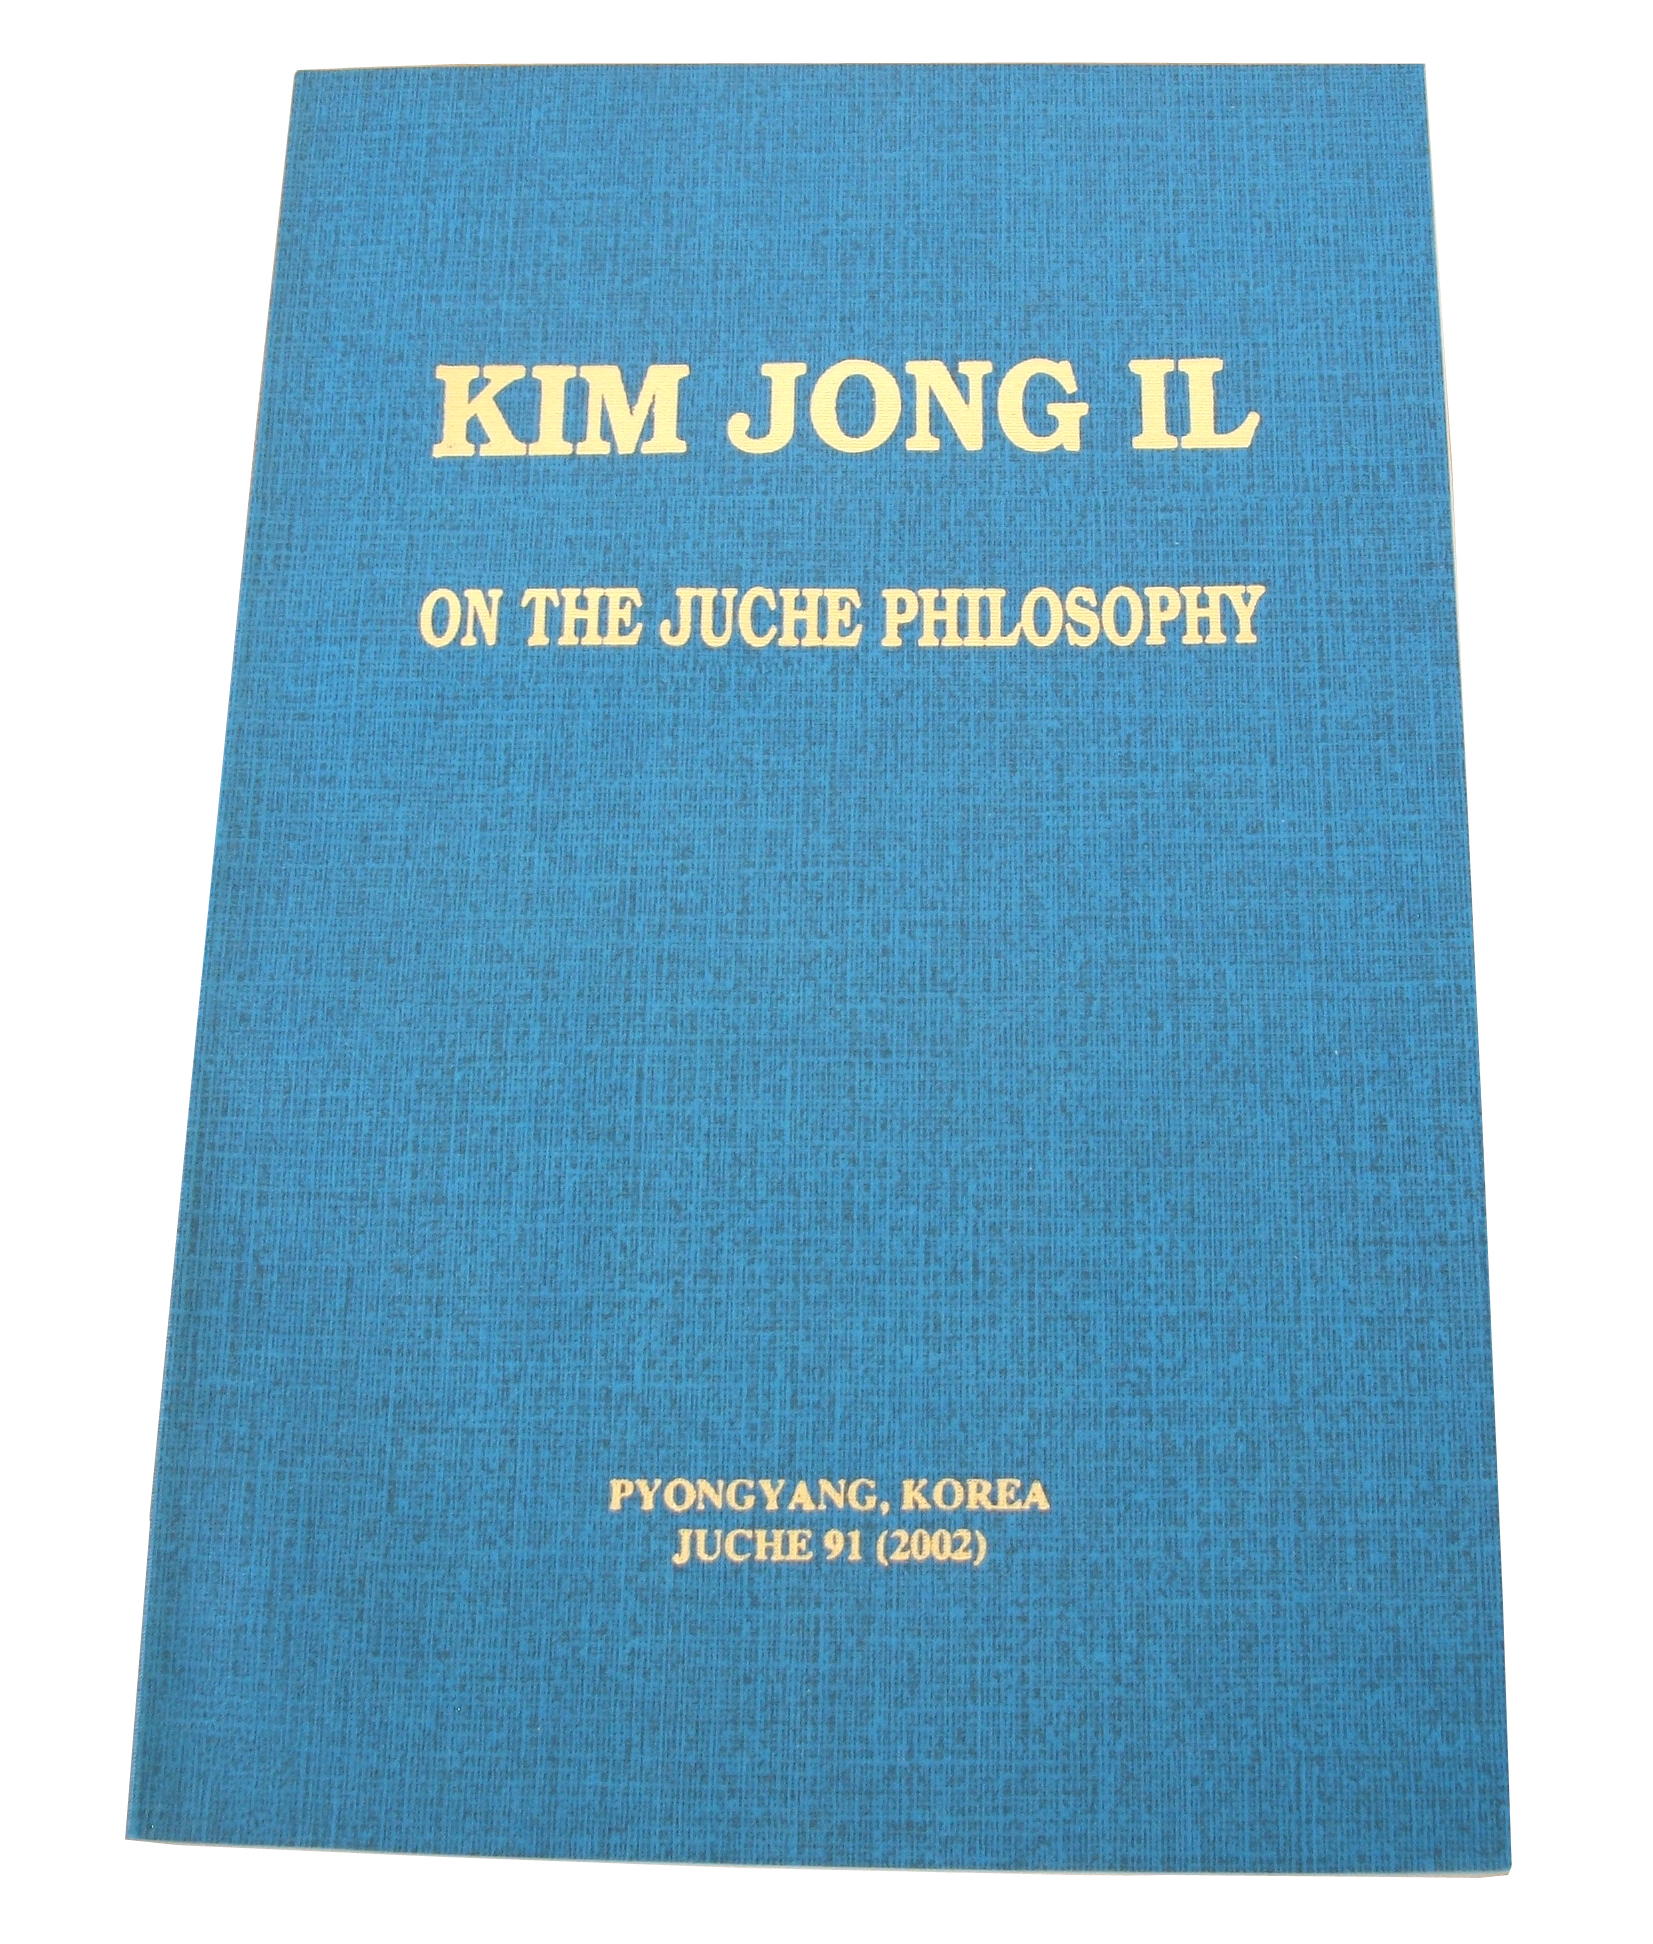 """On the Juche Philosophy"" by Kim Jong Il"